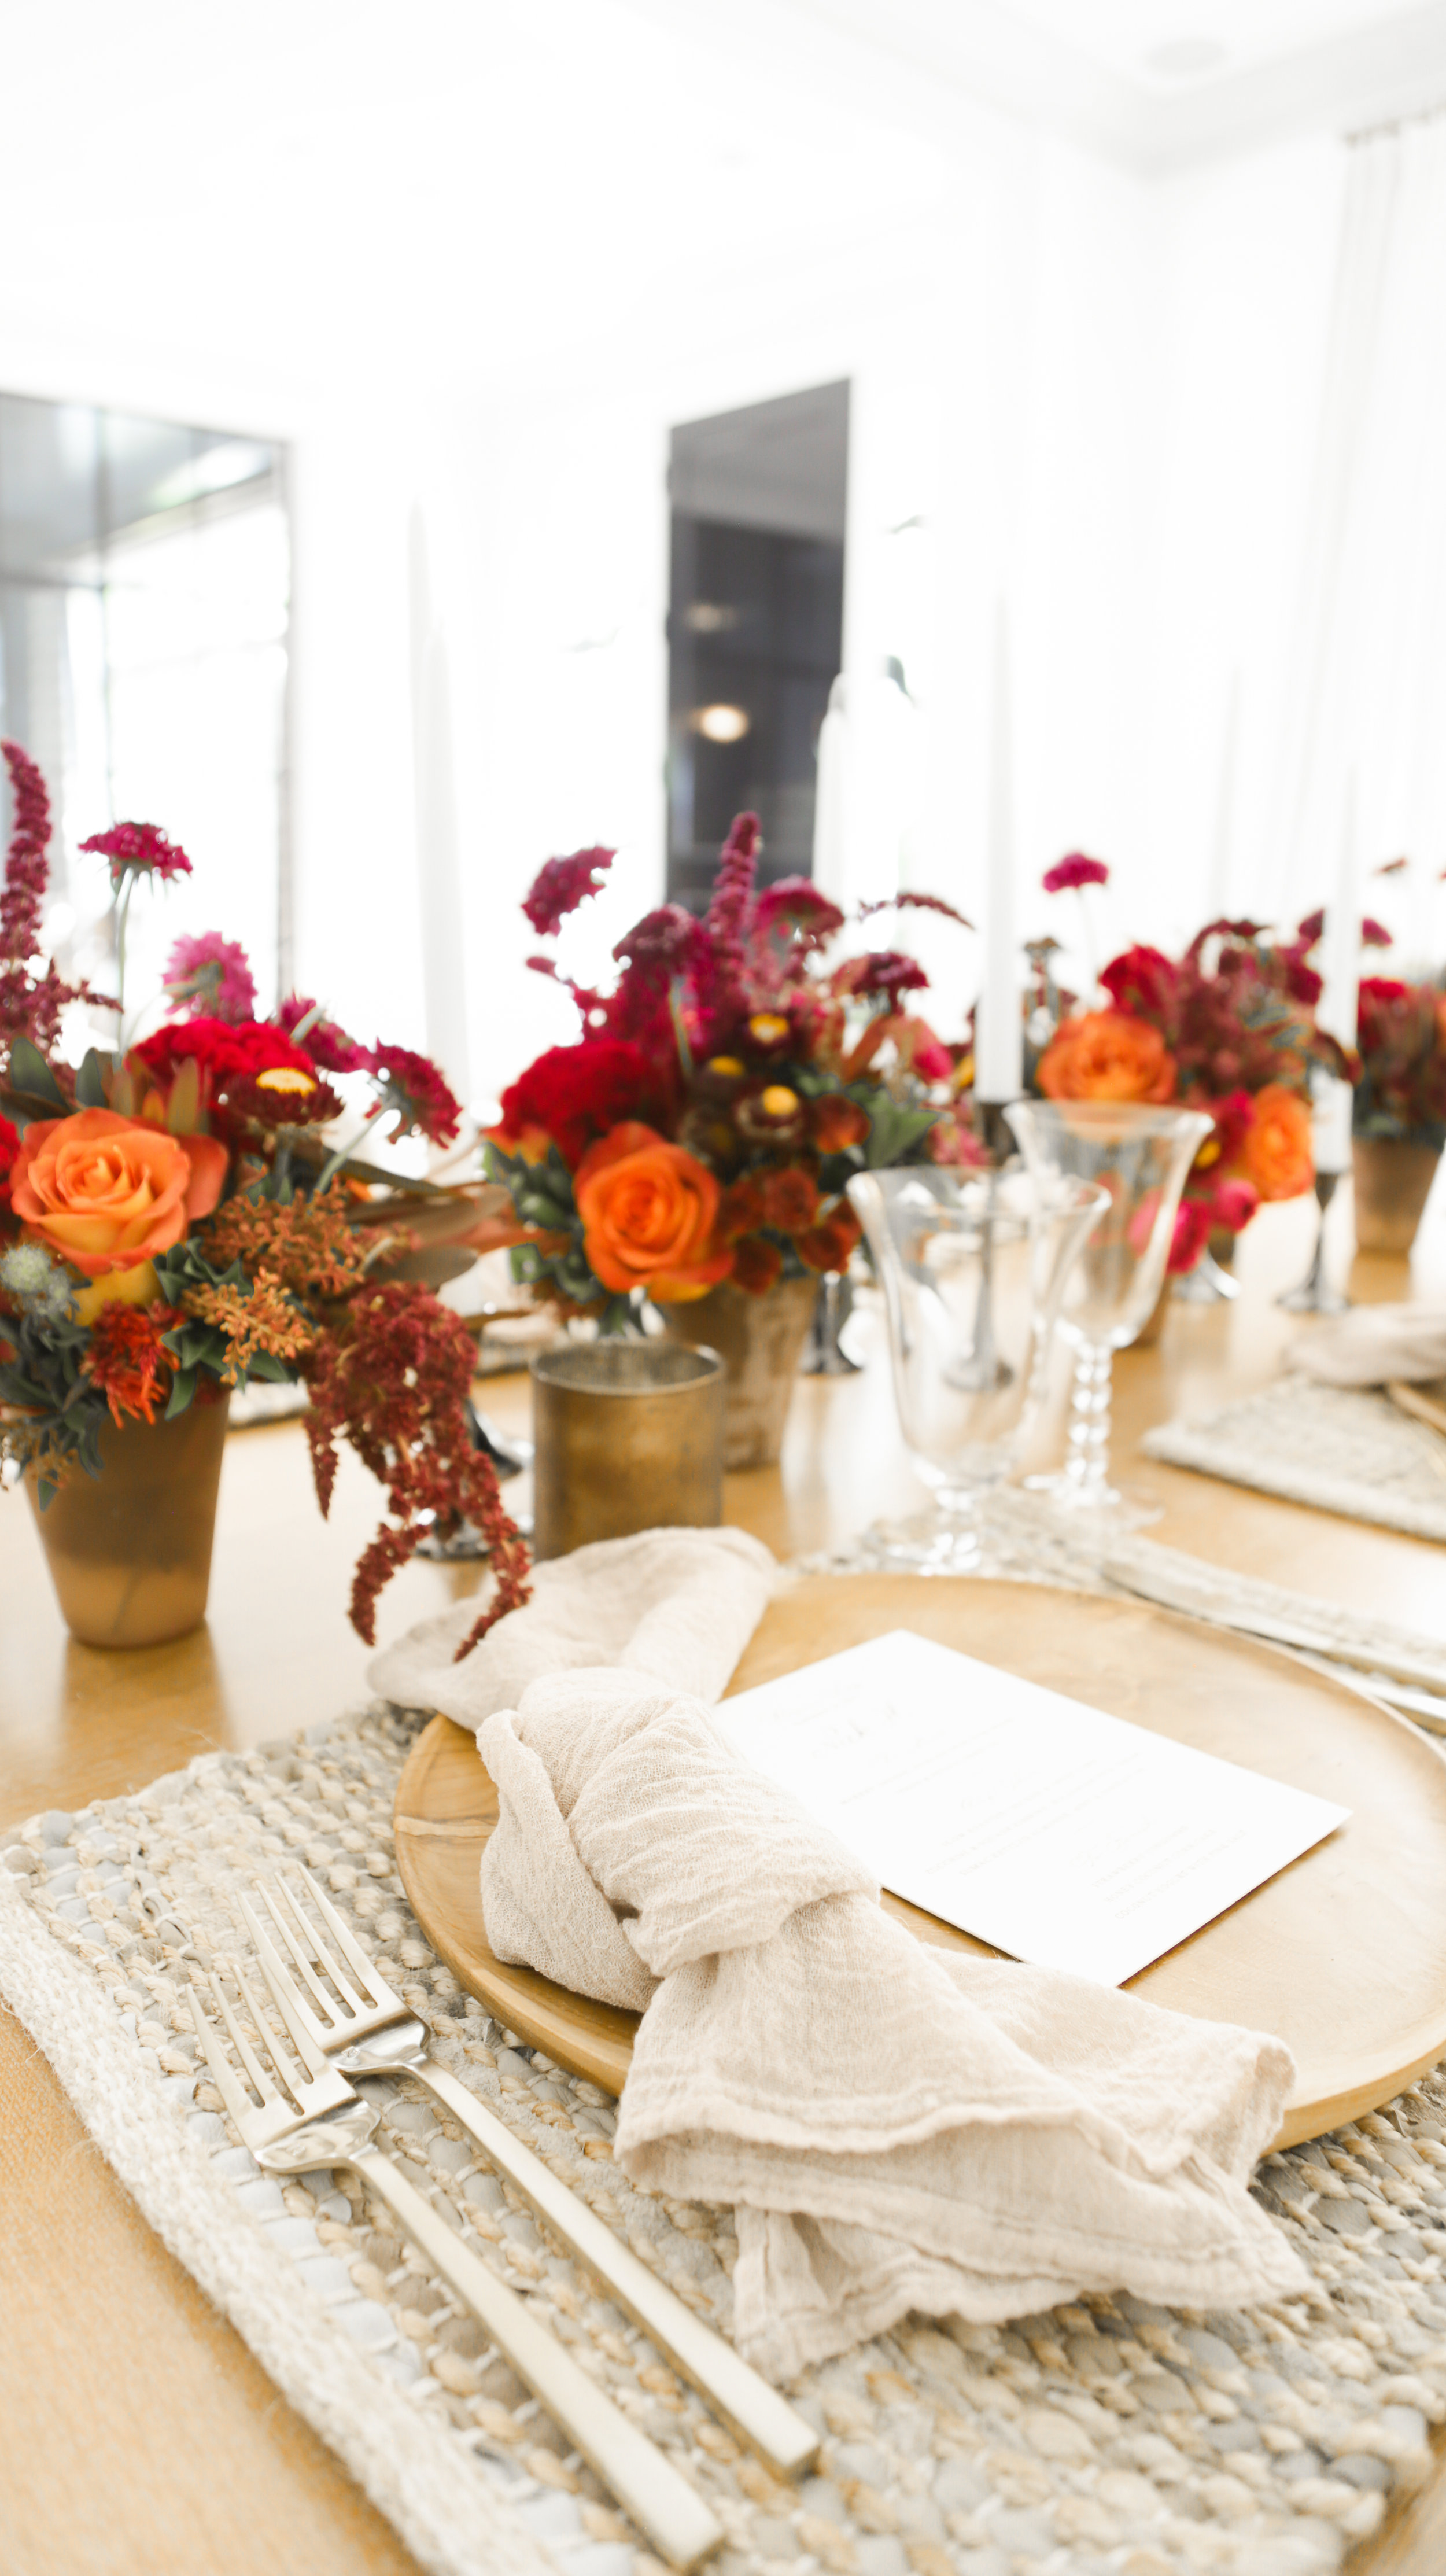 Molly Sims - A Rustic & Chic Fall Tablescape With Mimi Brown - photography by Erica Hampton